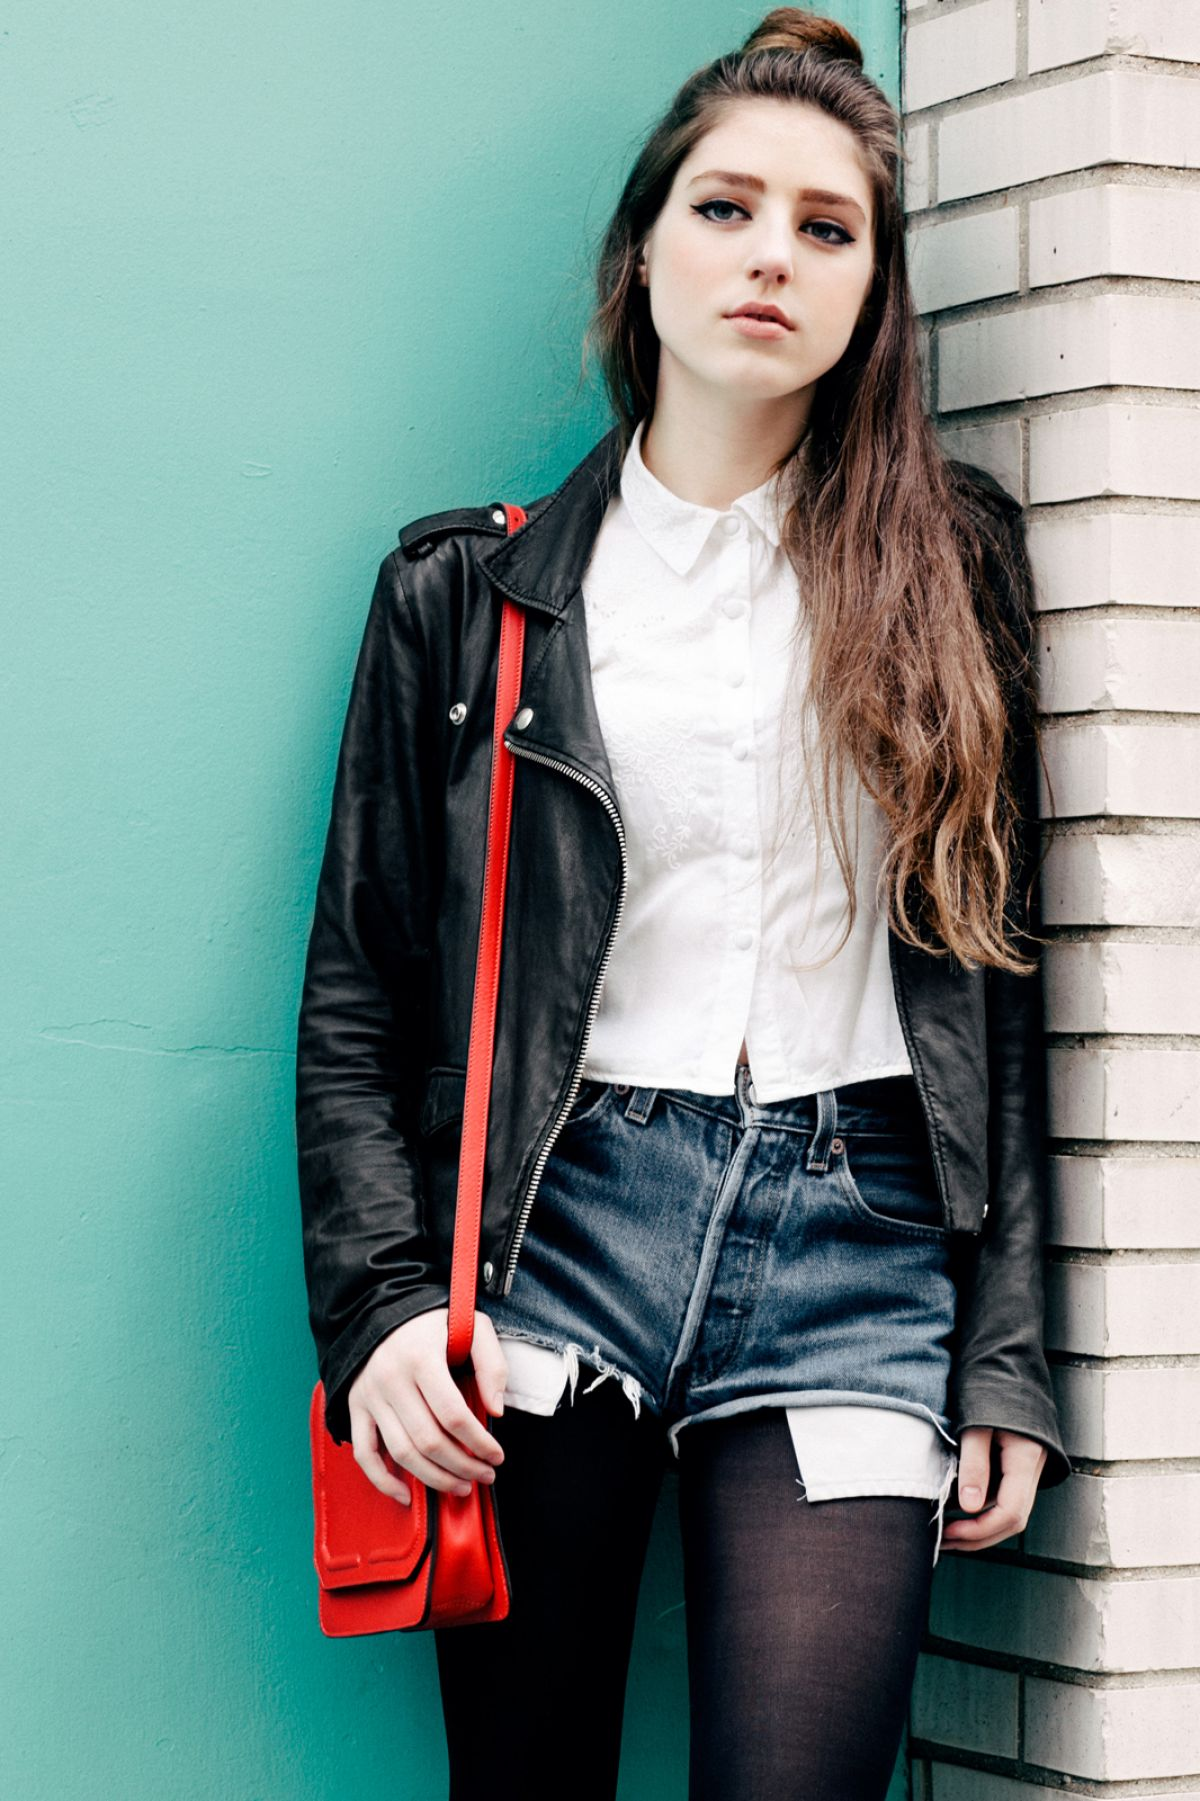 Birdy At Jens Ingvarsson Photoshoot For \u002639;Refinery29